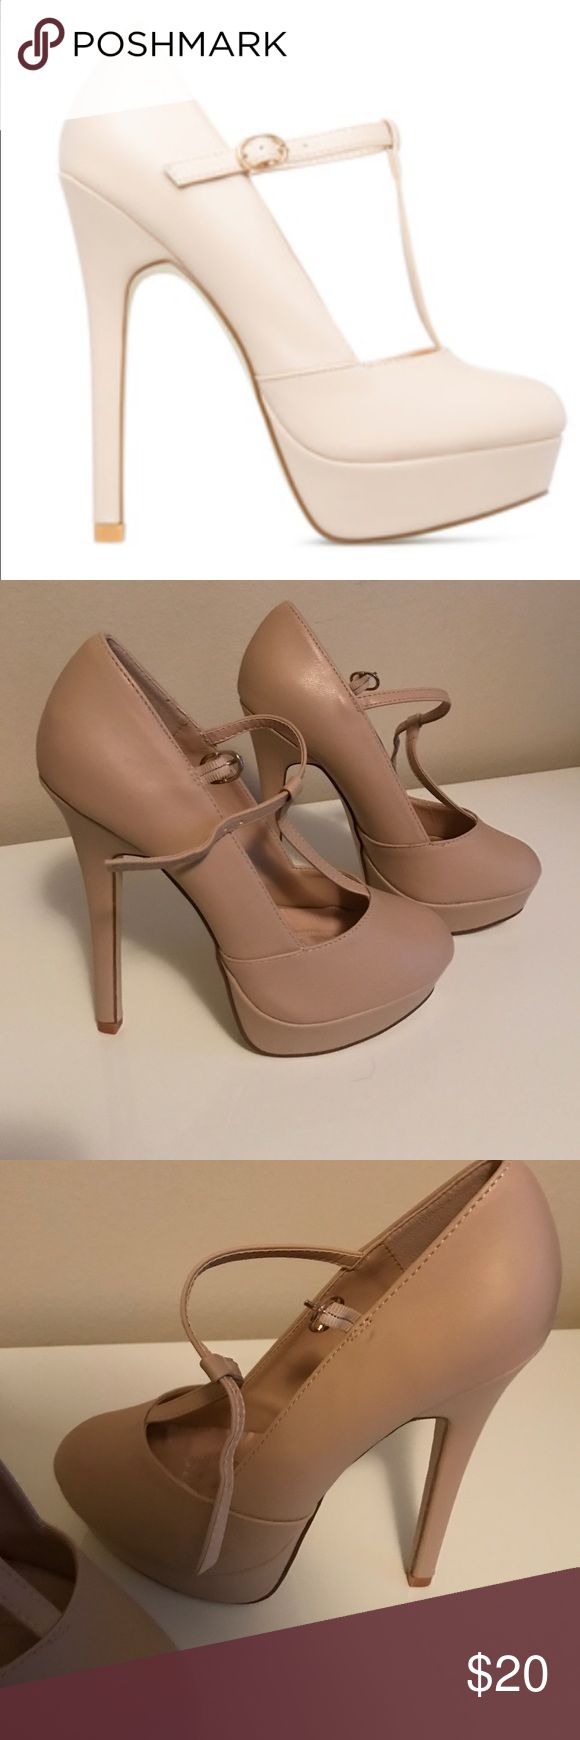 Rachelle nude platform heels NWOT NWOT Nude high heels. Has a platform in the front. So cute and sweet but sexy! They have only been worn once for dunce minutes to try them on. Nothing is wrong with them. The heel is just too high for me. Would look cute with jeans or a dress -really anything would look good with them because they are neutral. signature Shoes Platforms